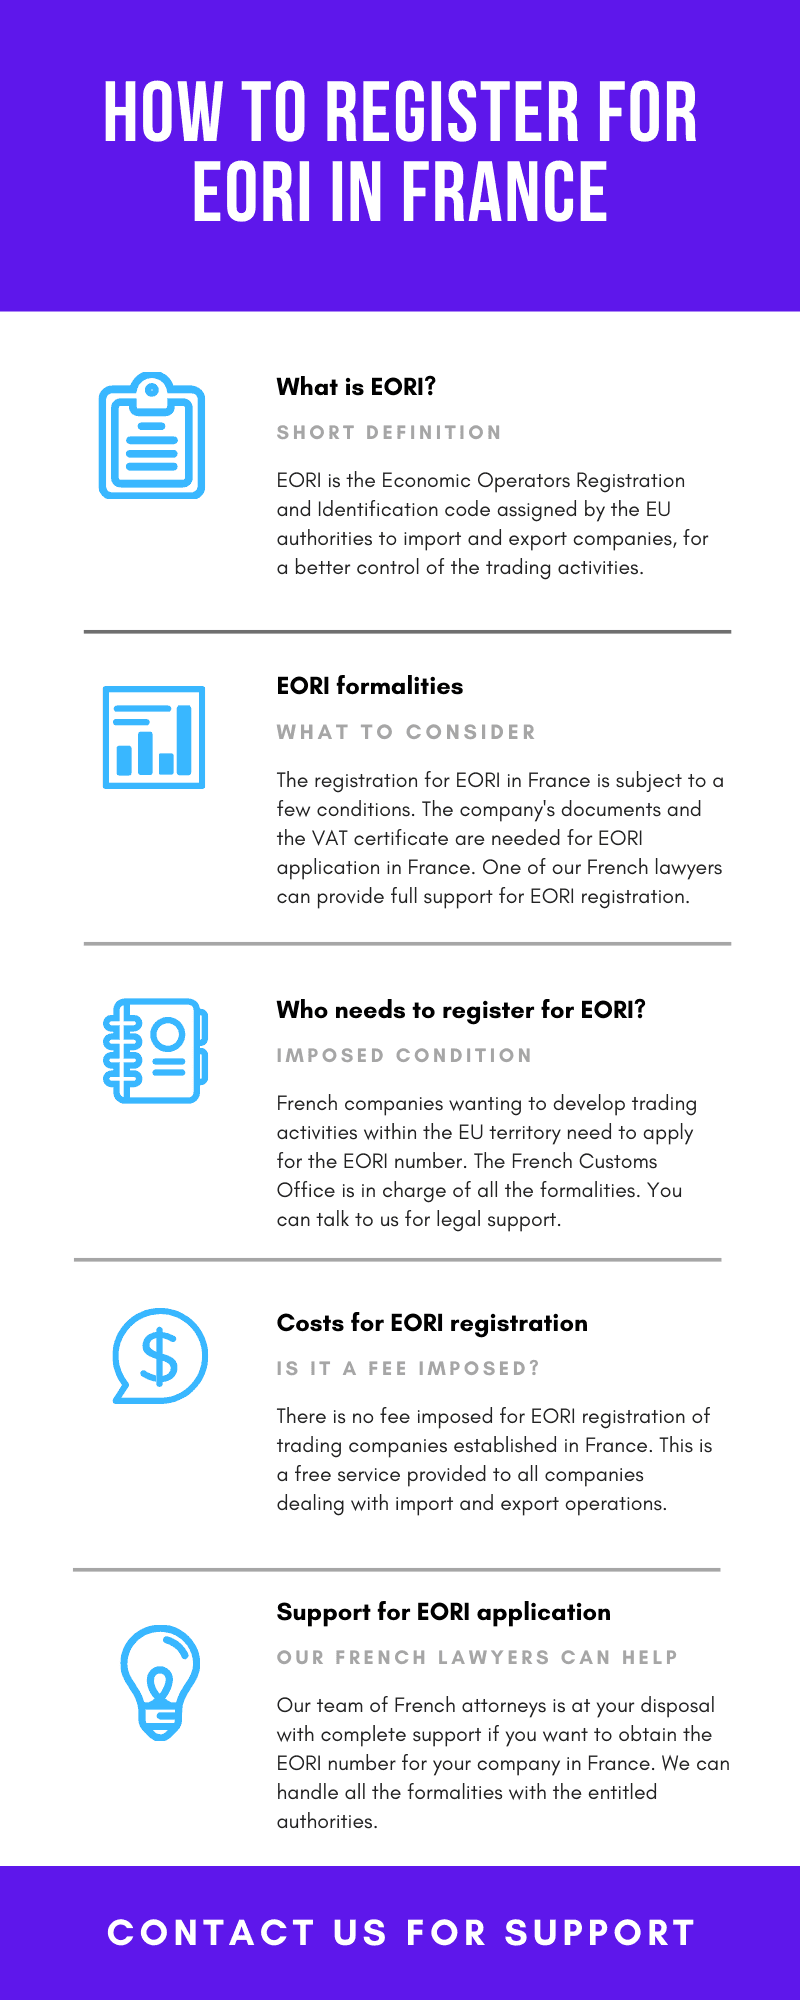 How to register for EORI in France1.png